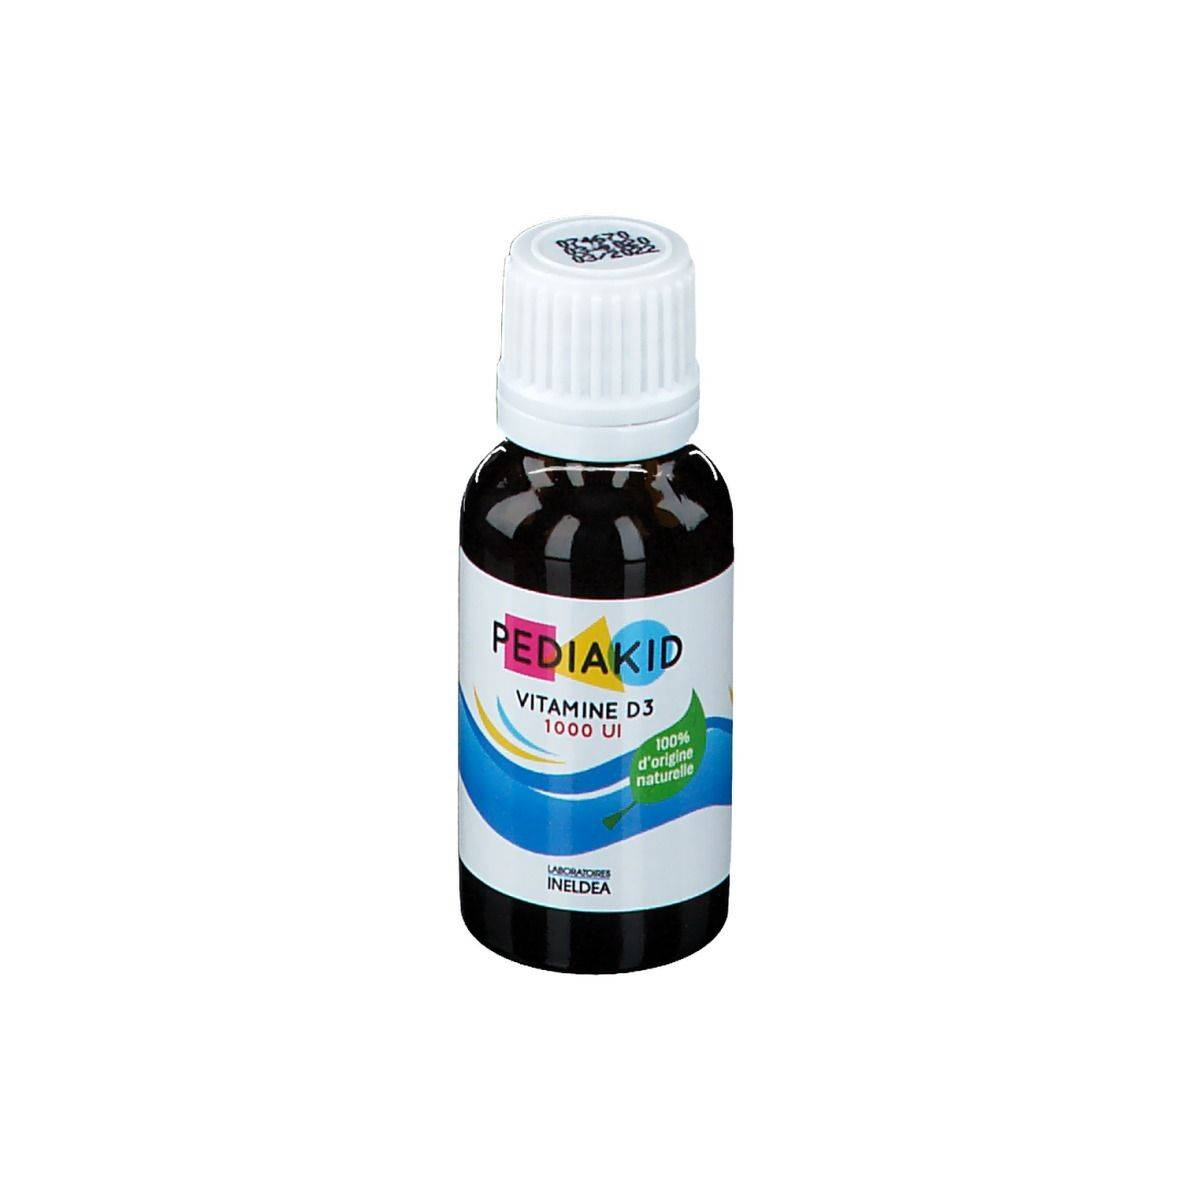 PEDIAKID® Vitamine D3 ml goutte(s)